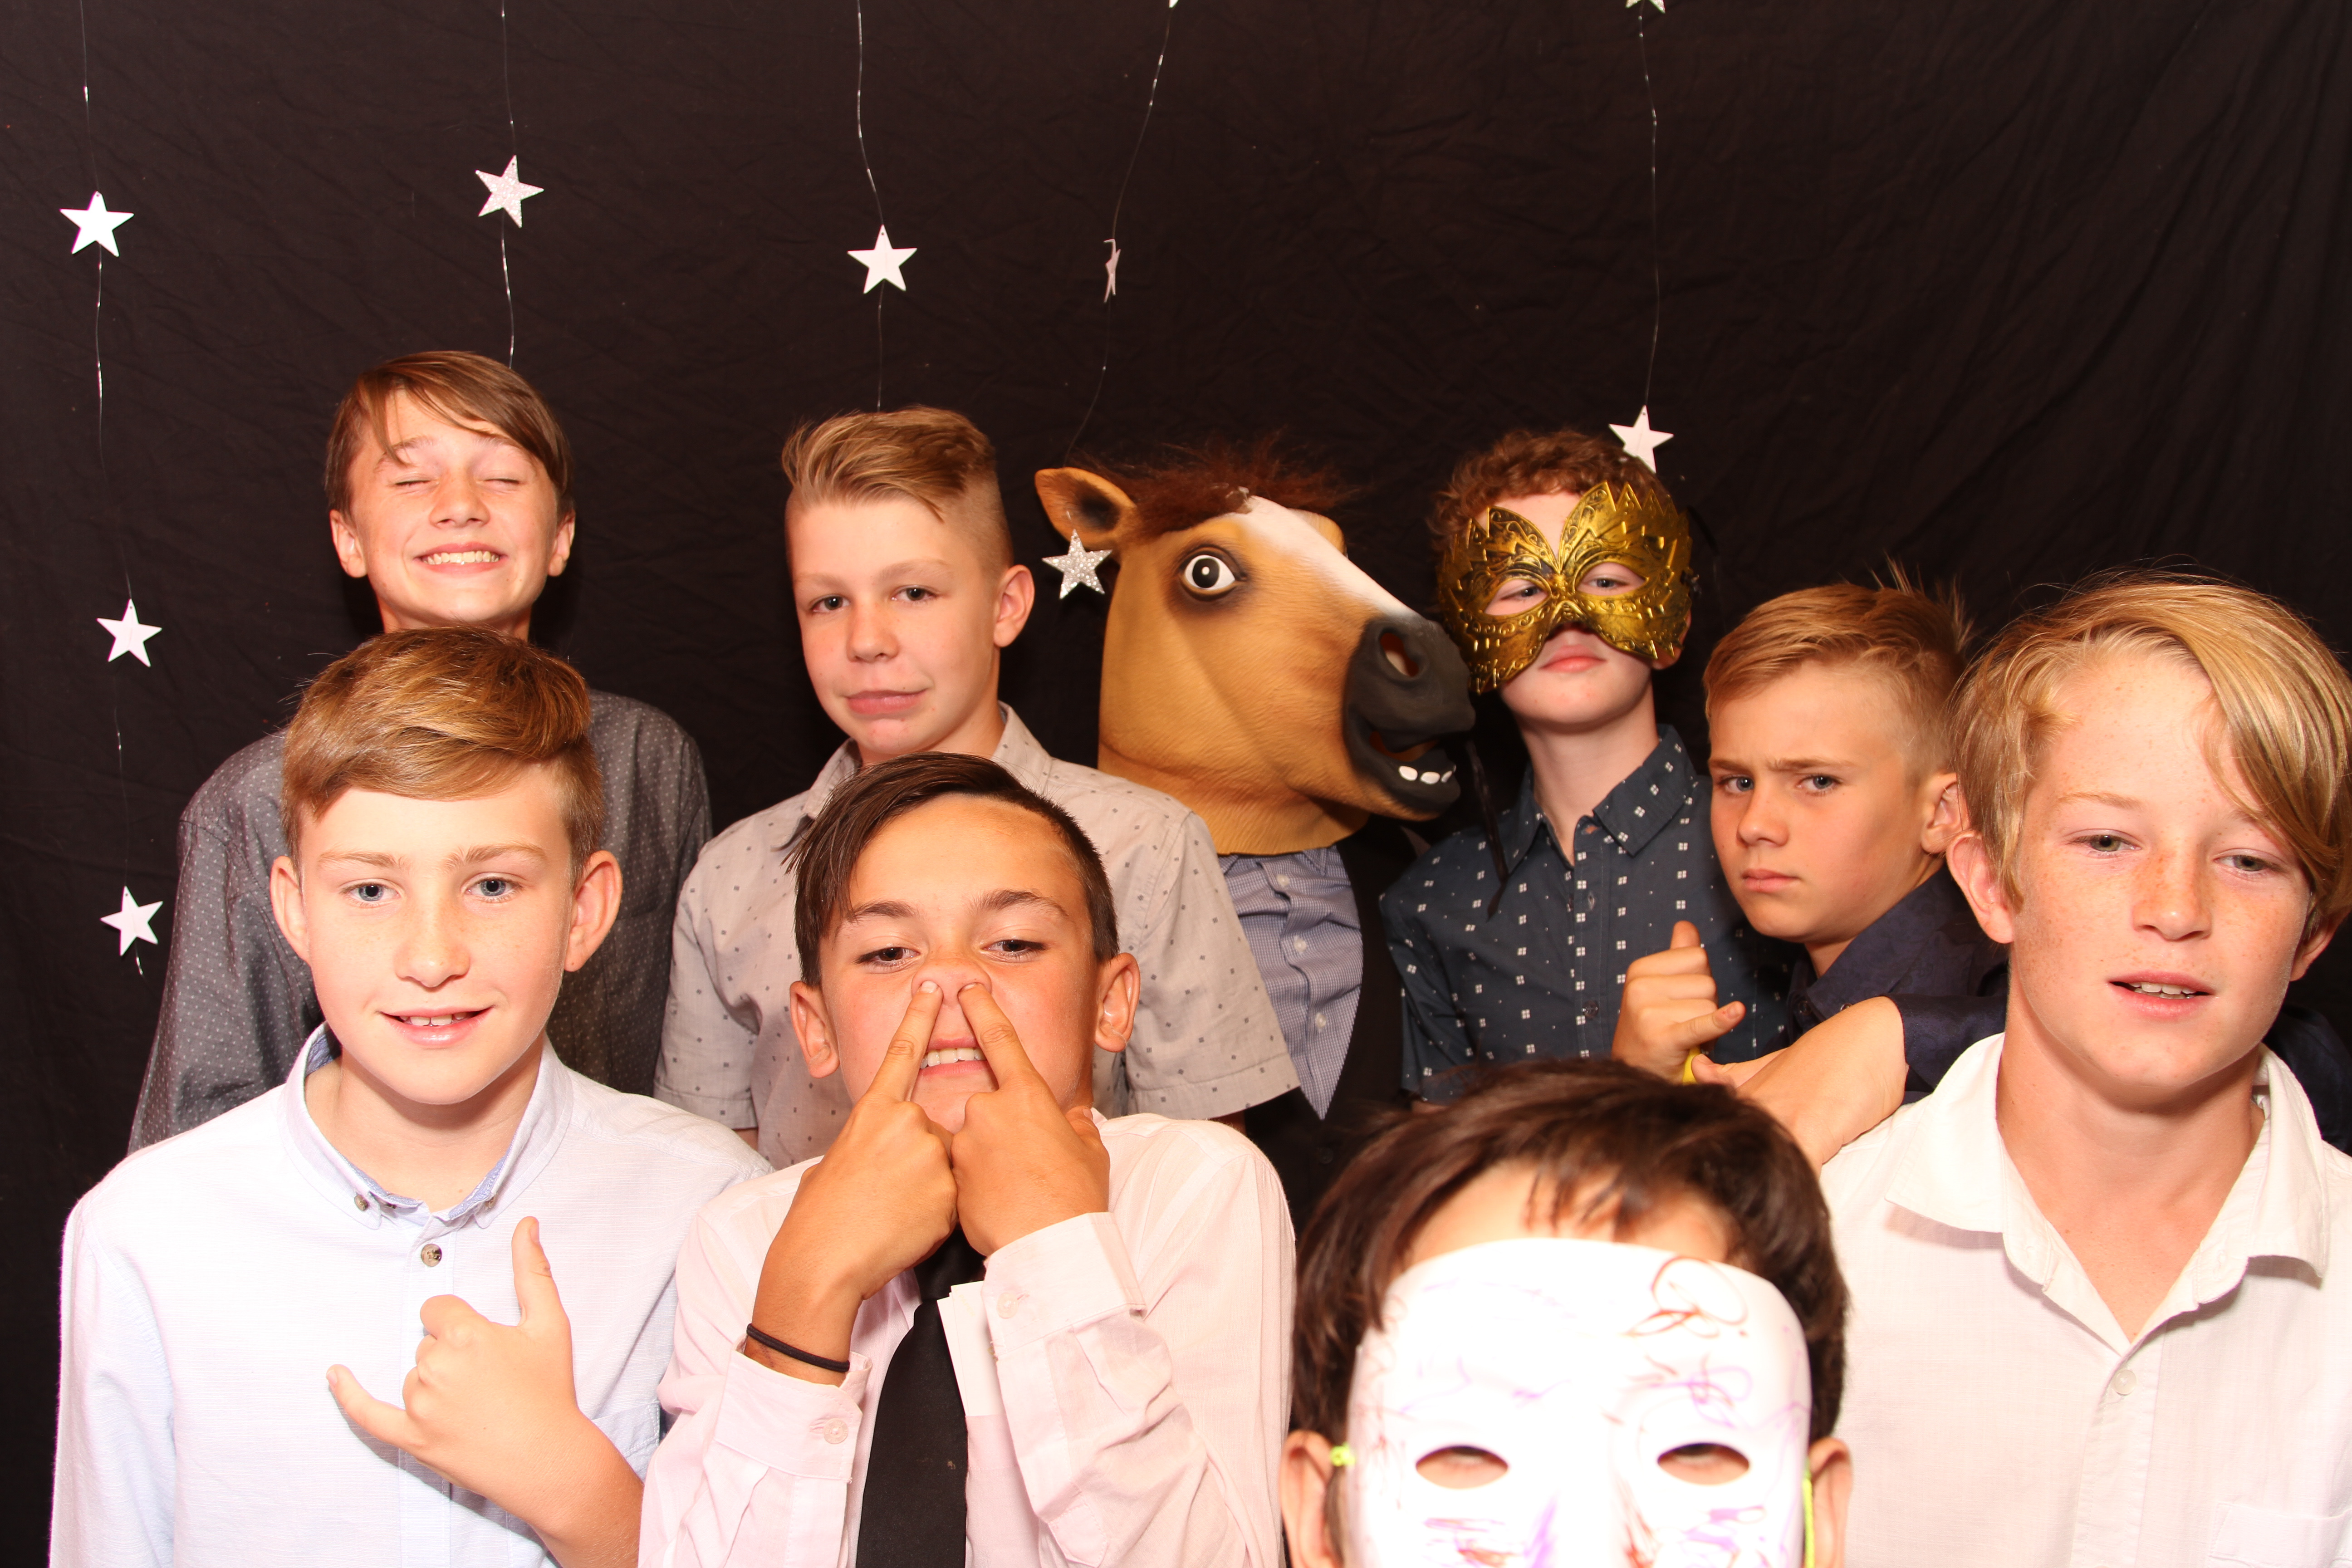 SNPS Graduation Photo booth